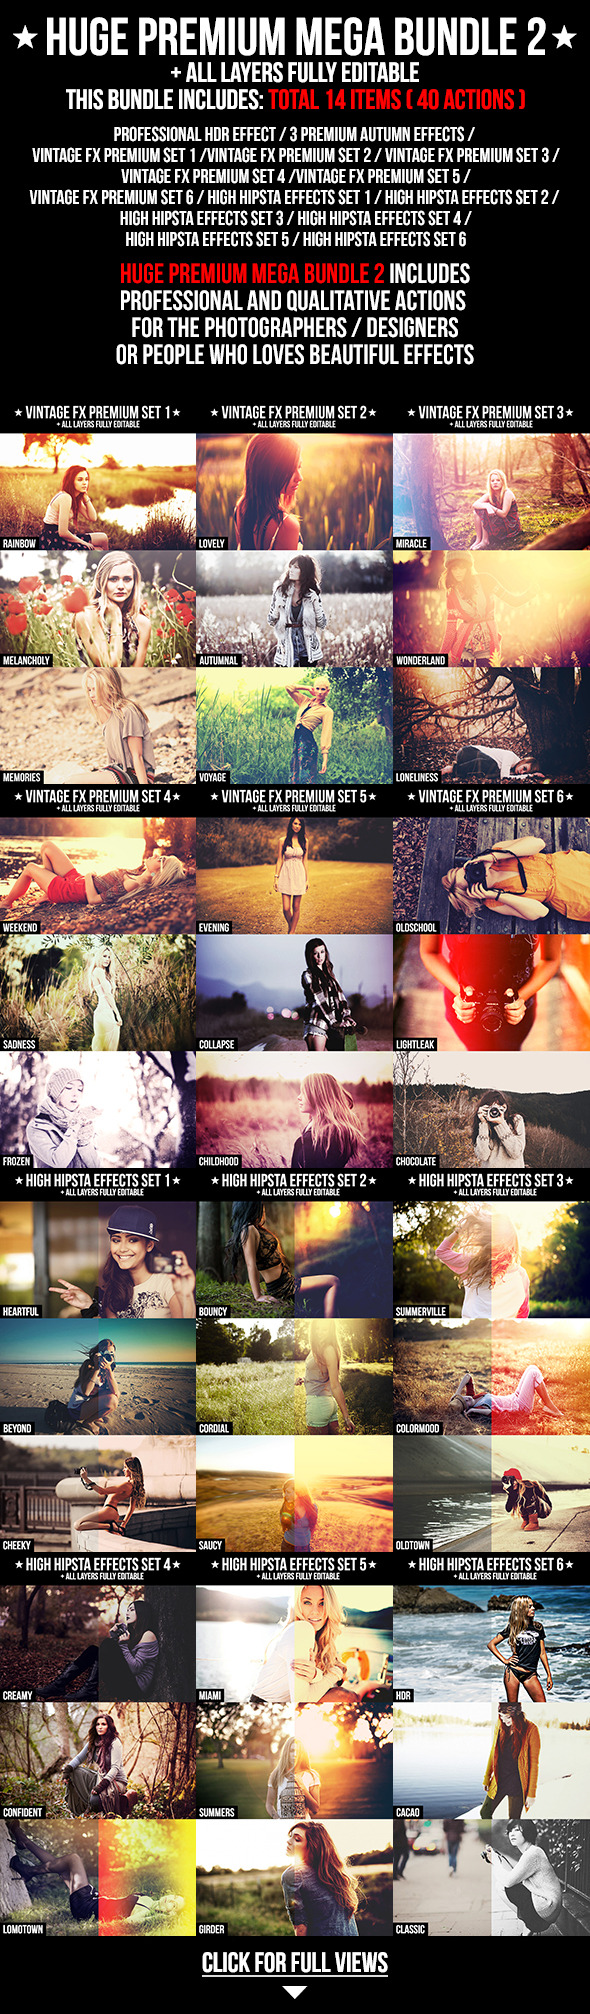 Huge Premium Mega Bundle 2 - Photo Effects Actions